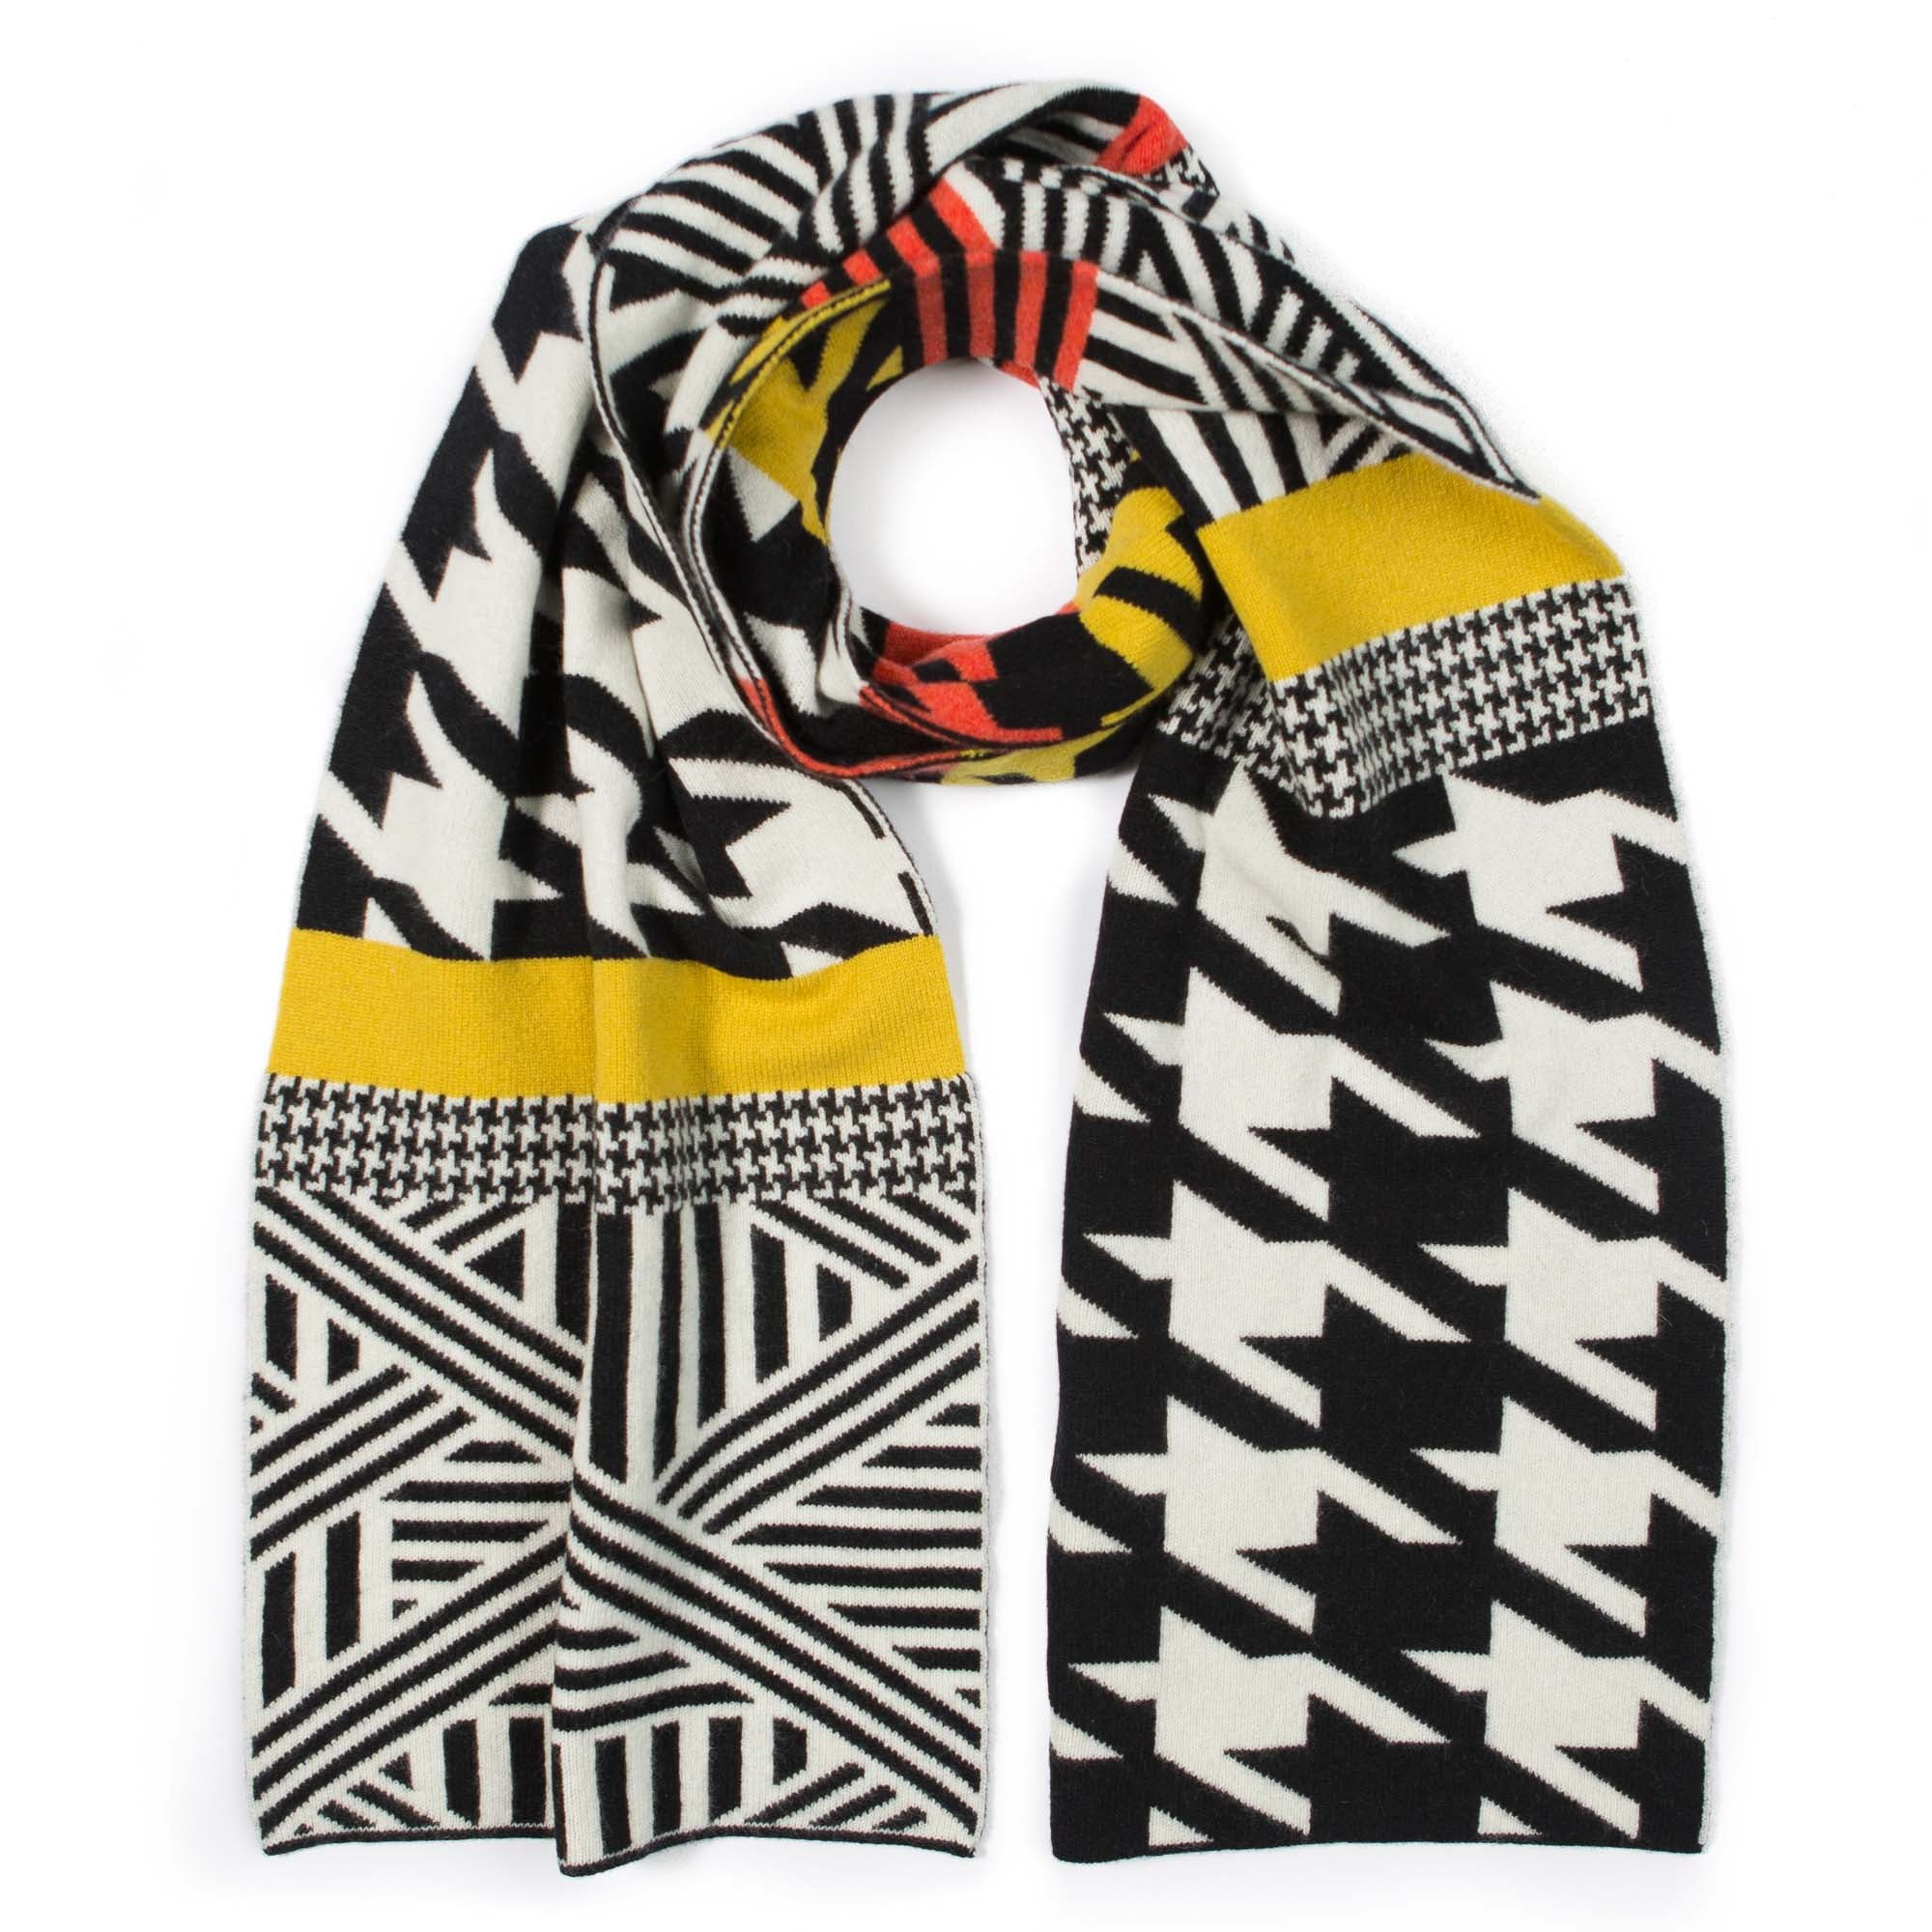 HOUNDSTOOTH BLANKET SCARF BLACK & WHITE - GREEN THOMAS